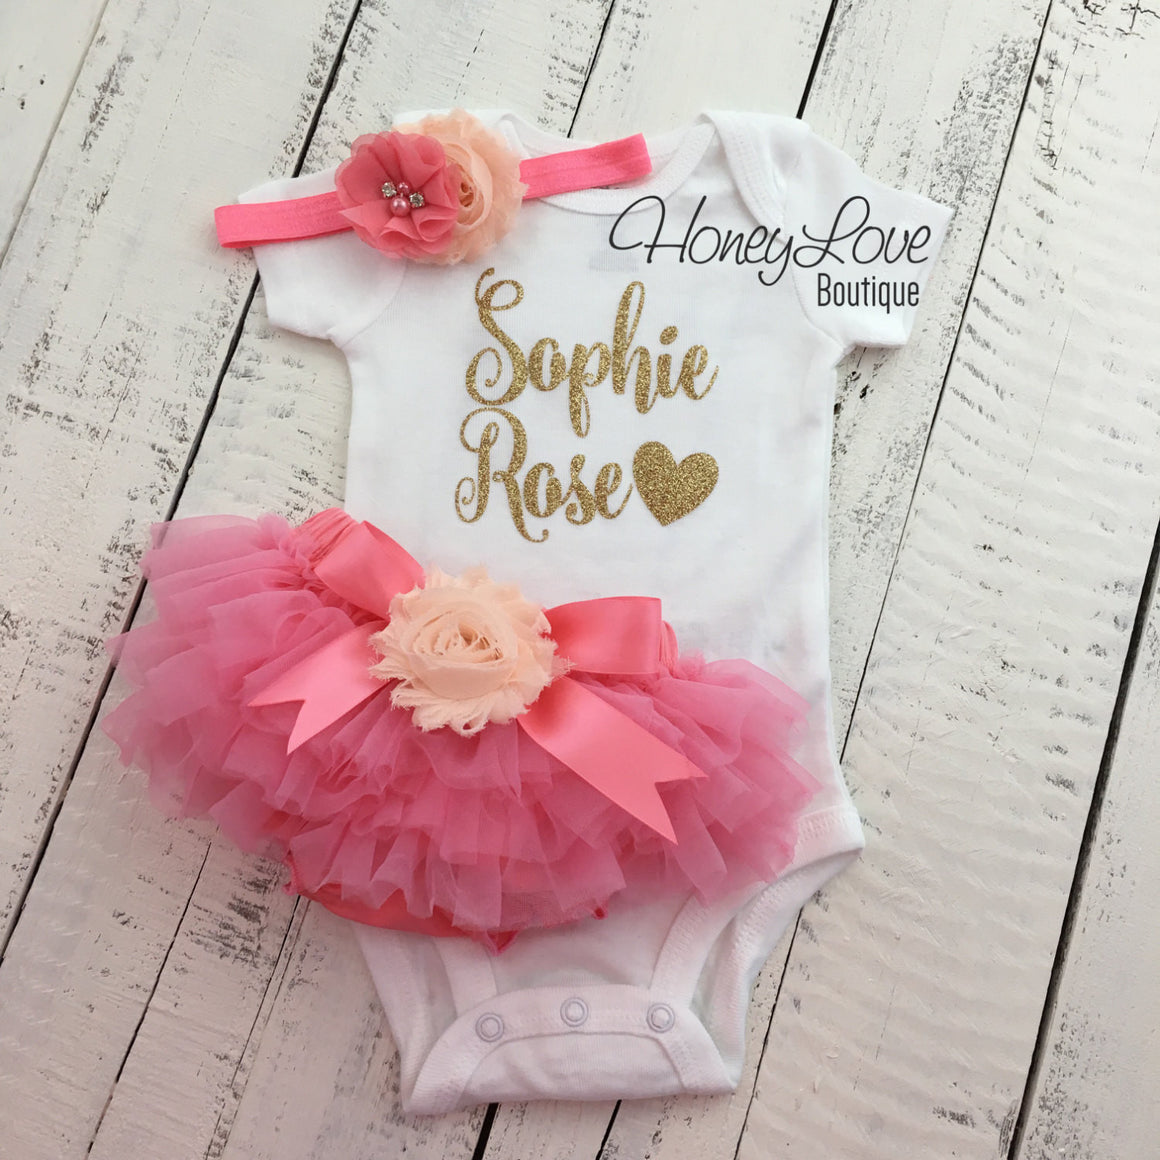 PERSONALIZED Coral Pink and Gold Glitter - Peach flower embellished tutu skirt bloomers - HoneyLoveBoutique